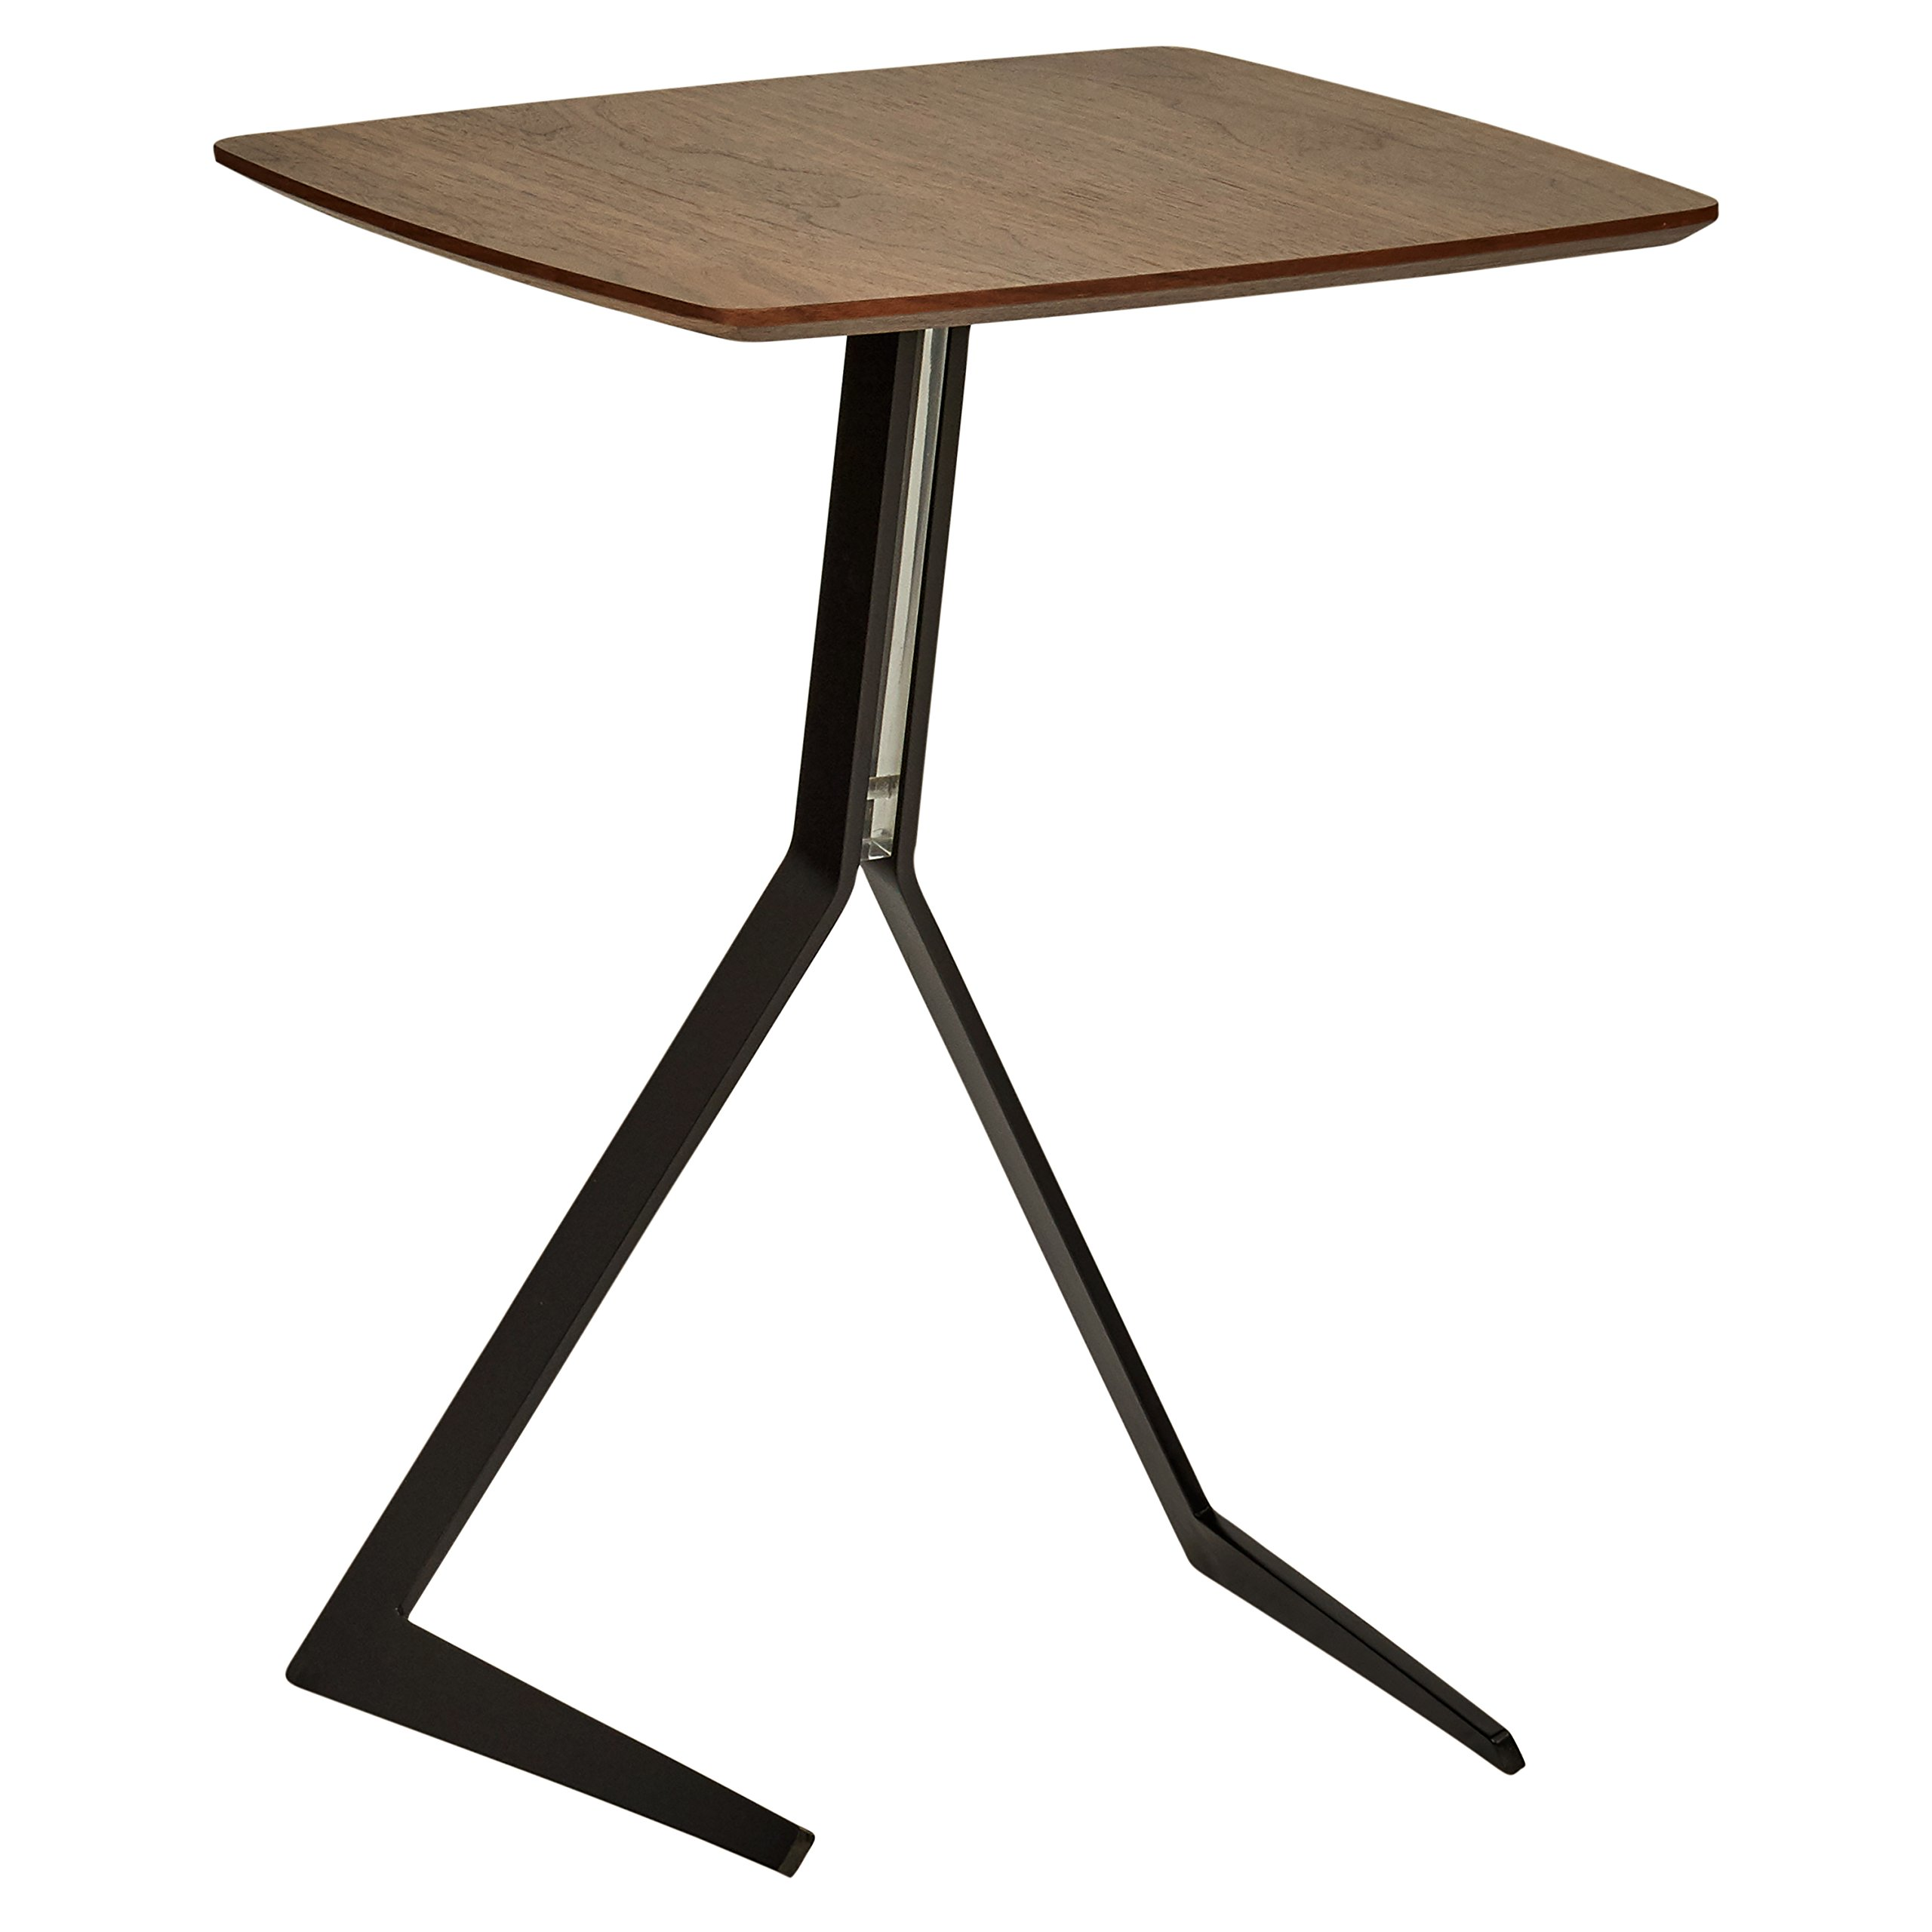 Rivet Industrial Tilted Wood and Metal End Table, 17.3'' W, Walnut